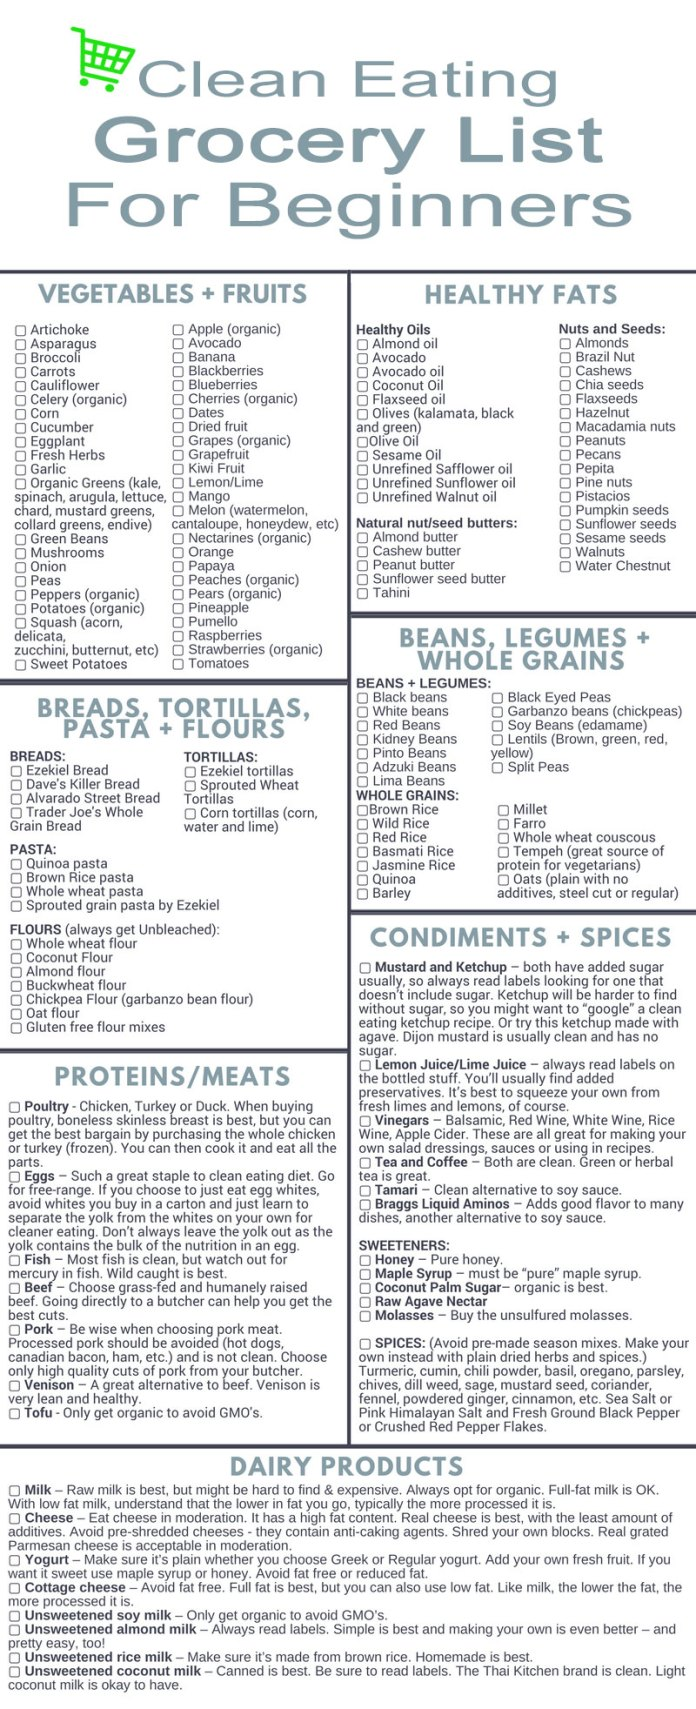 Clean-eating-grocery-list-products-women-should-buy-to-be-healthy